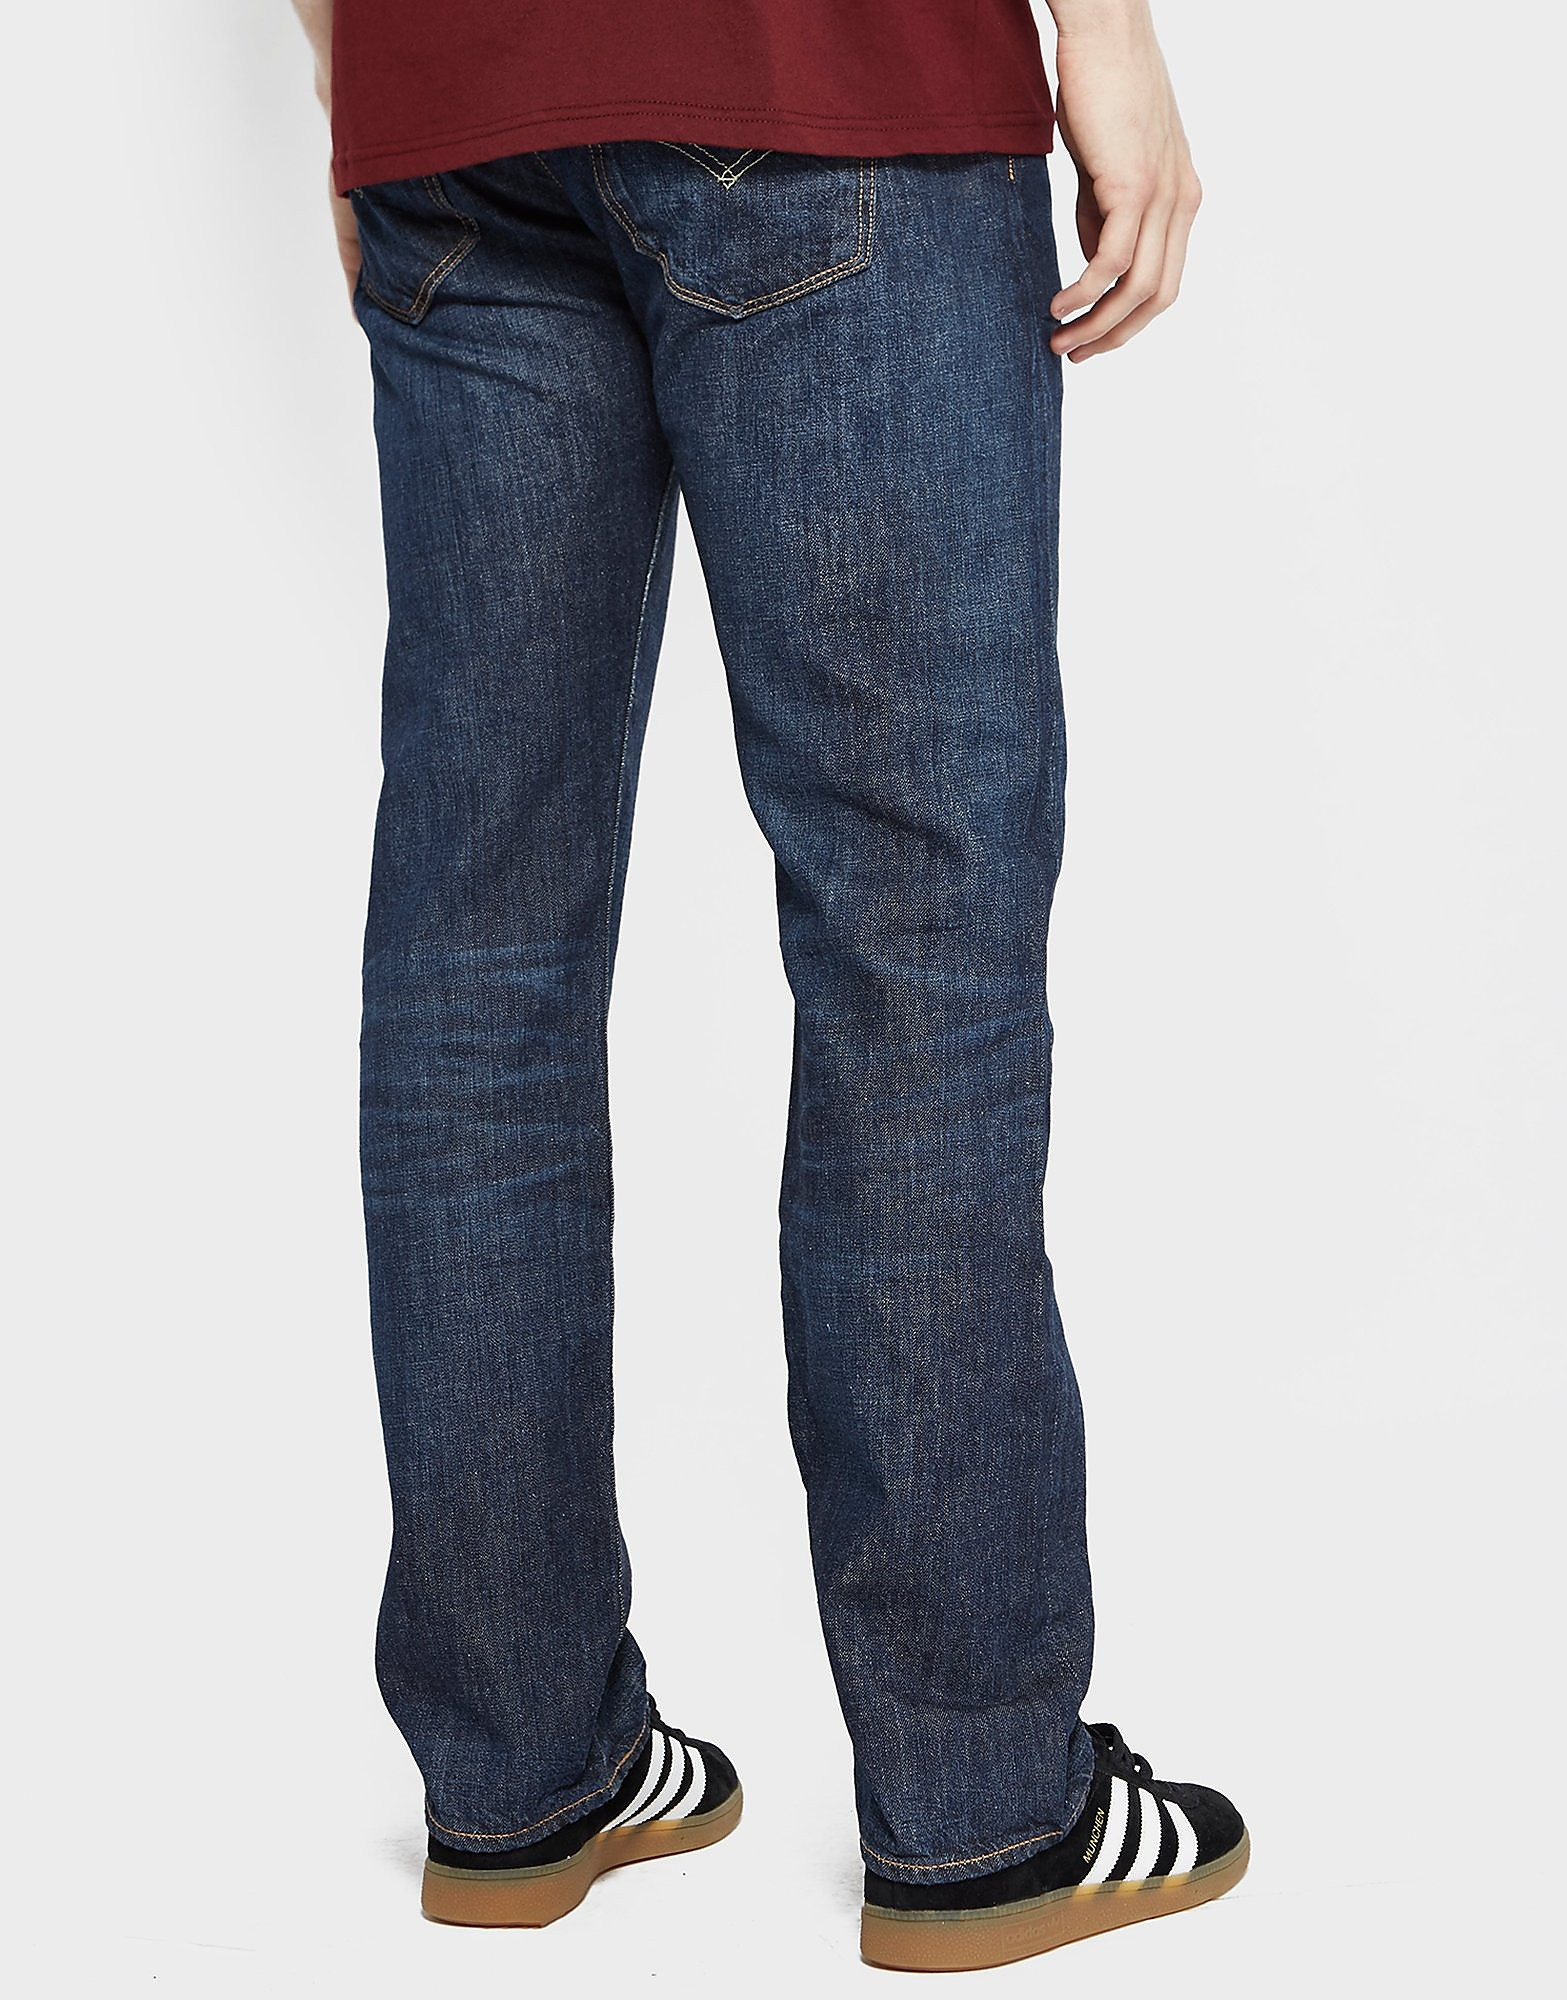 Levis 501 Regular Felton Jean